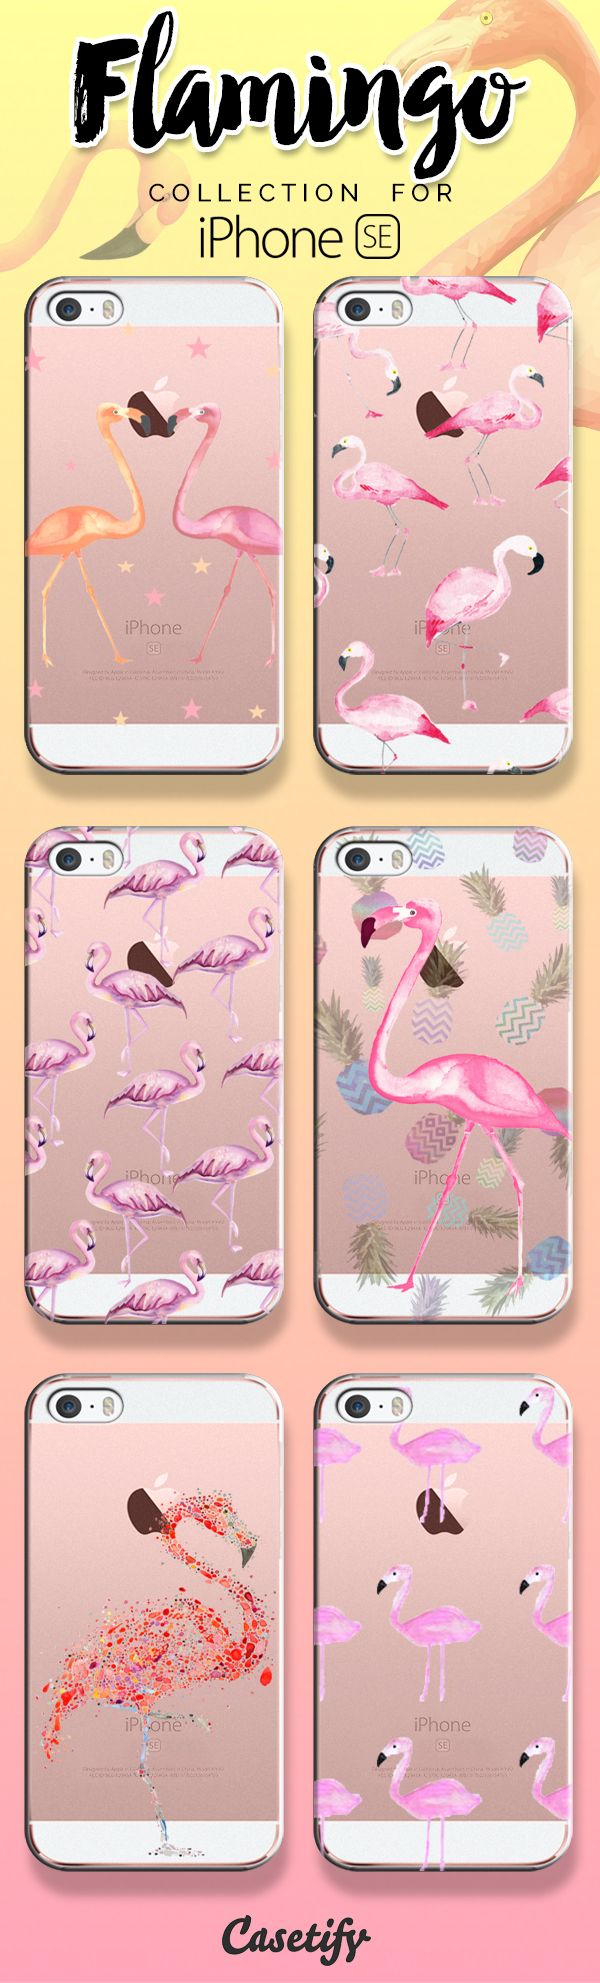 Be a flamingo in a flock of pigeons! Shop our flamingo collection now! https://www.casetify.com/search?keyword=flamingo | @casetify